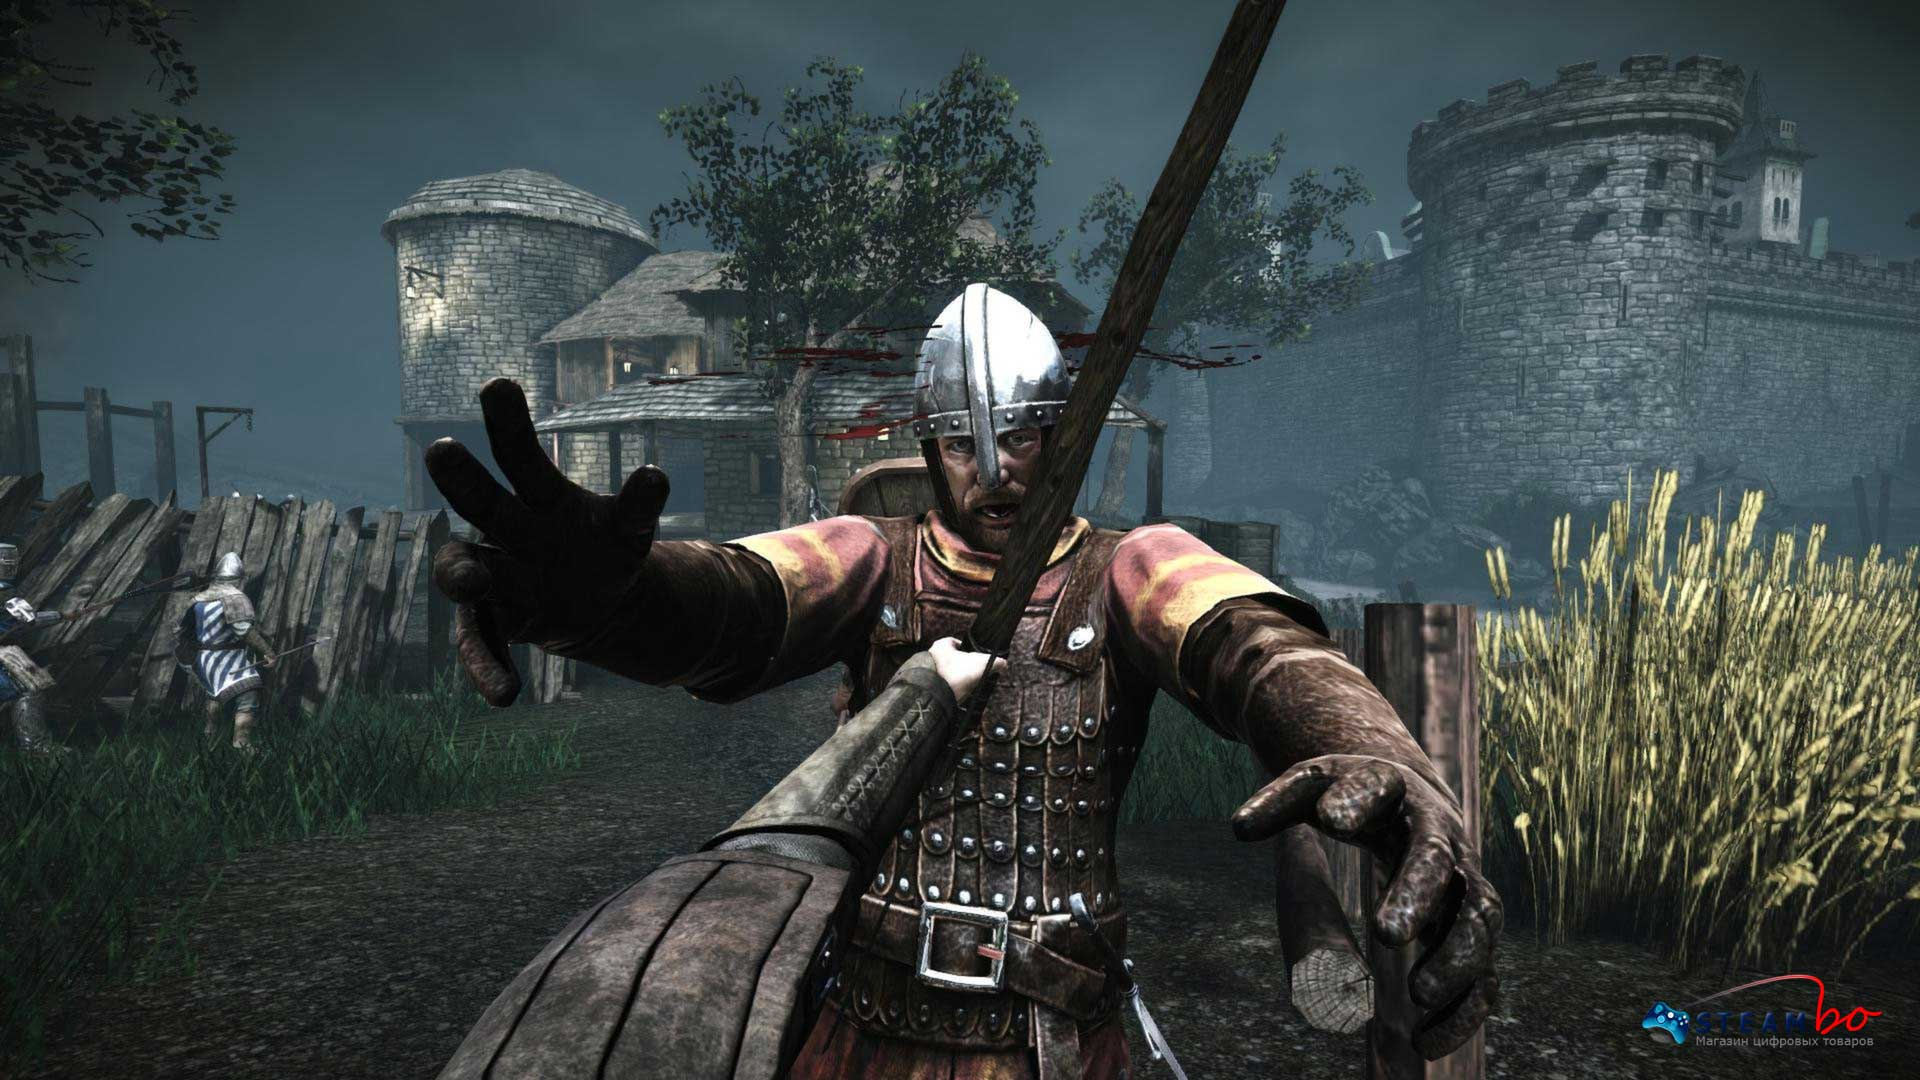 Chivalry: Complete Pack Region Free (Steam Gift/Key)